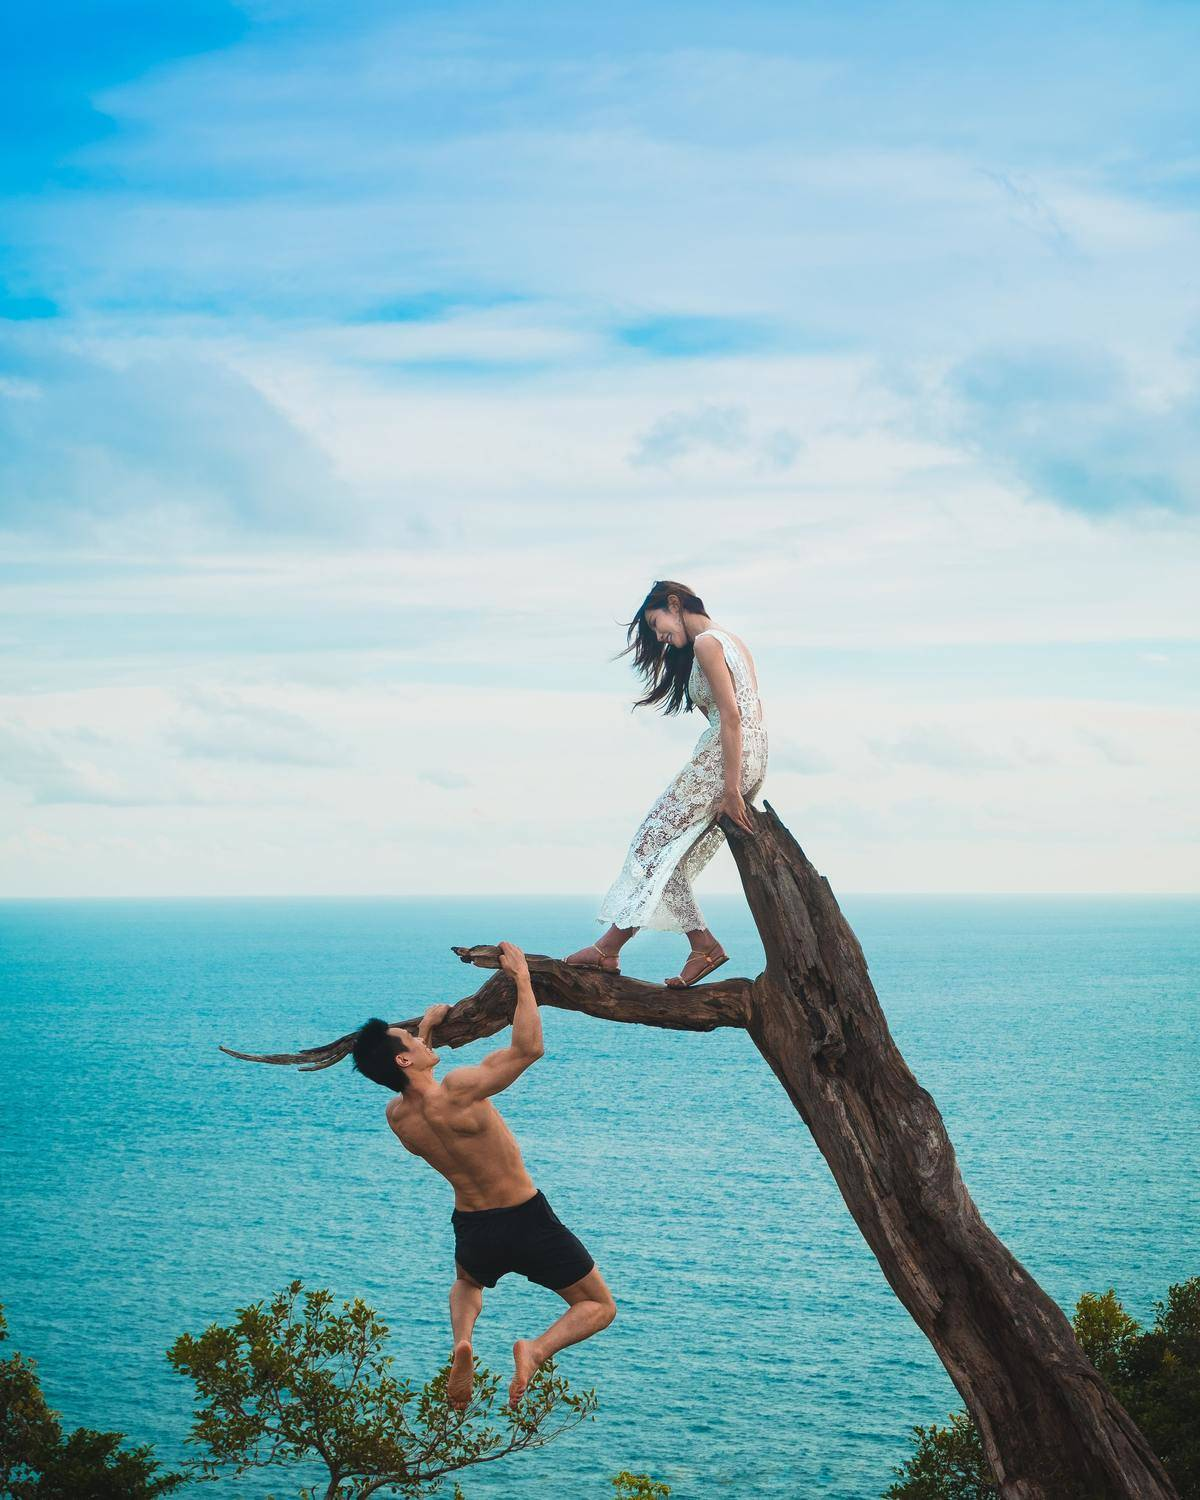 man climbing tree by the sea to reach woman sitting on top